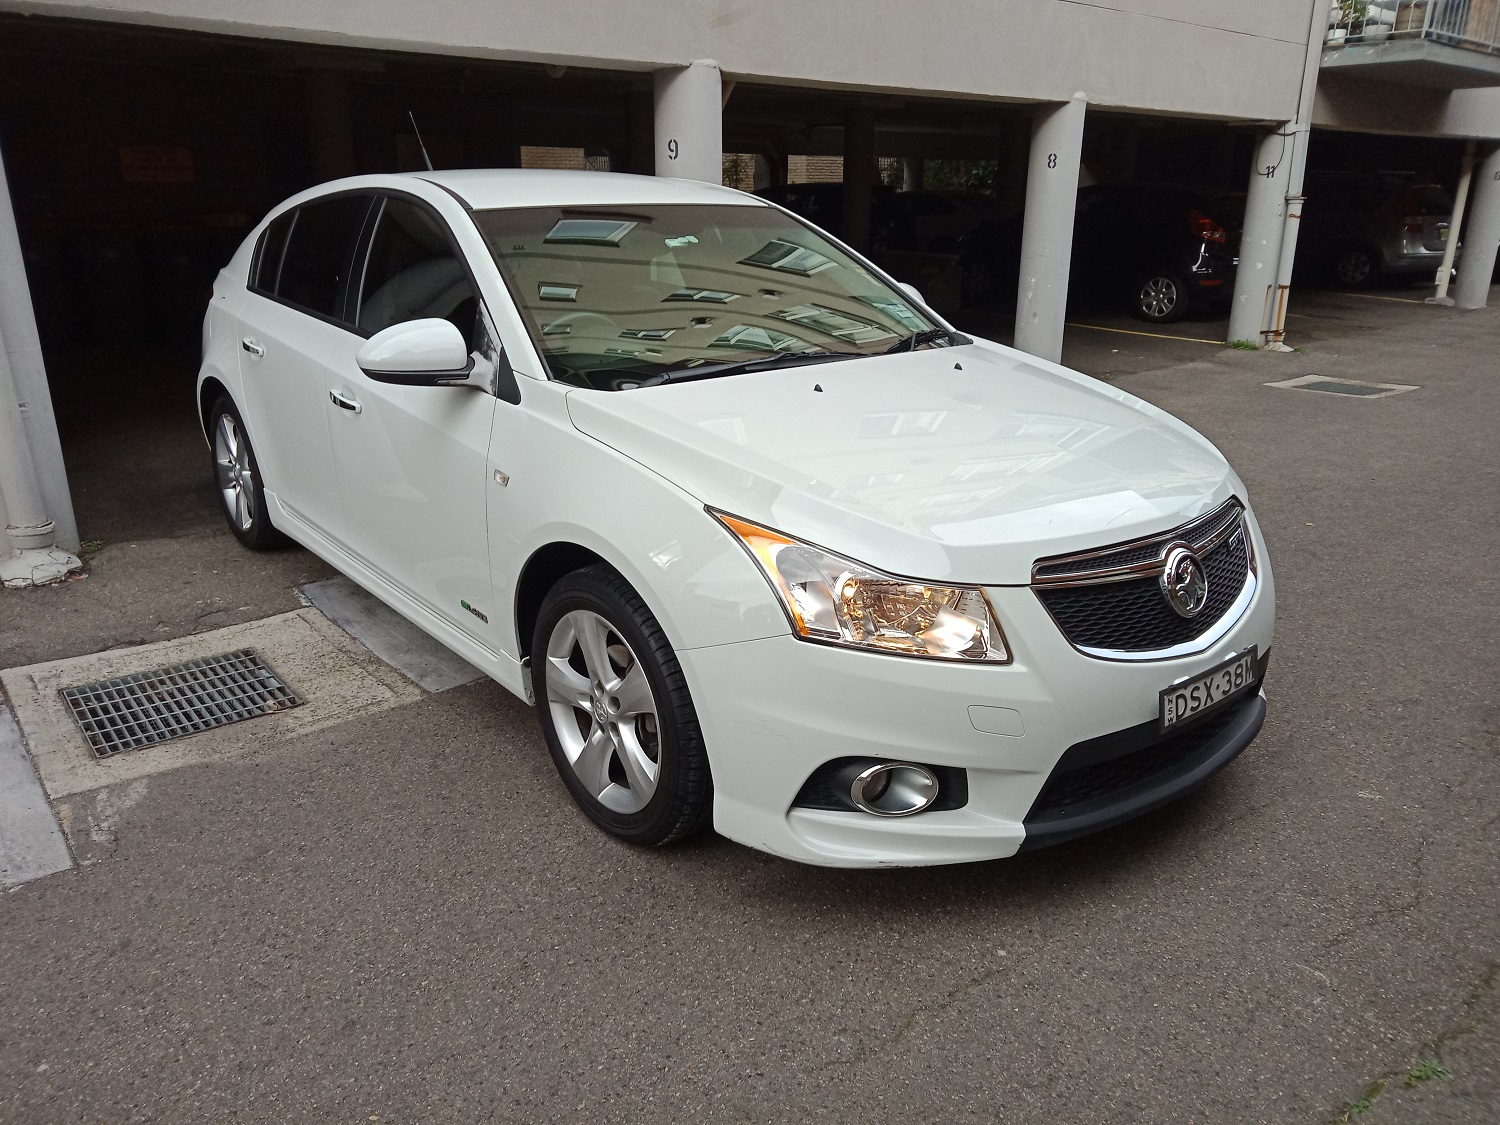 Picture of Barbara's 2011 Holden Cruze